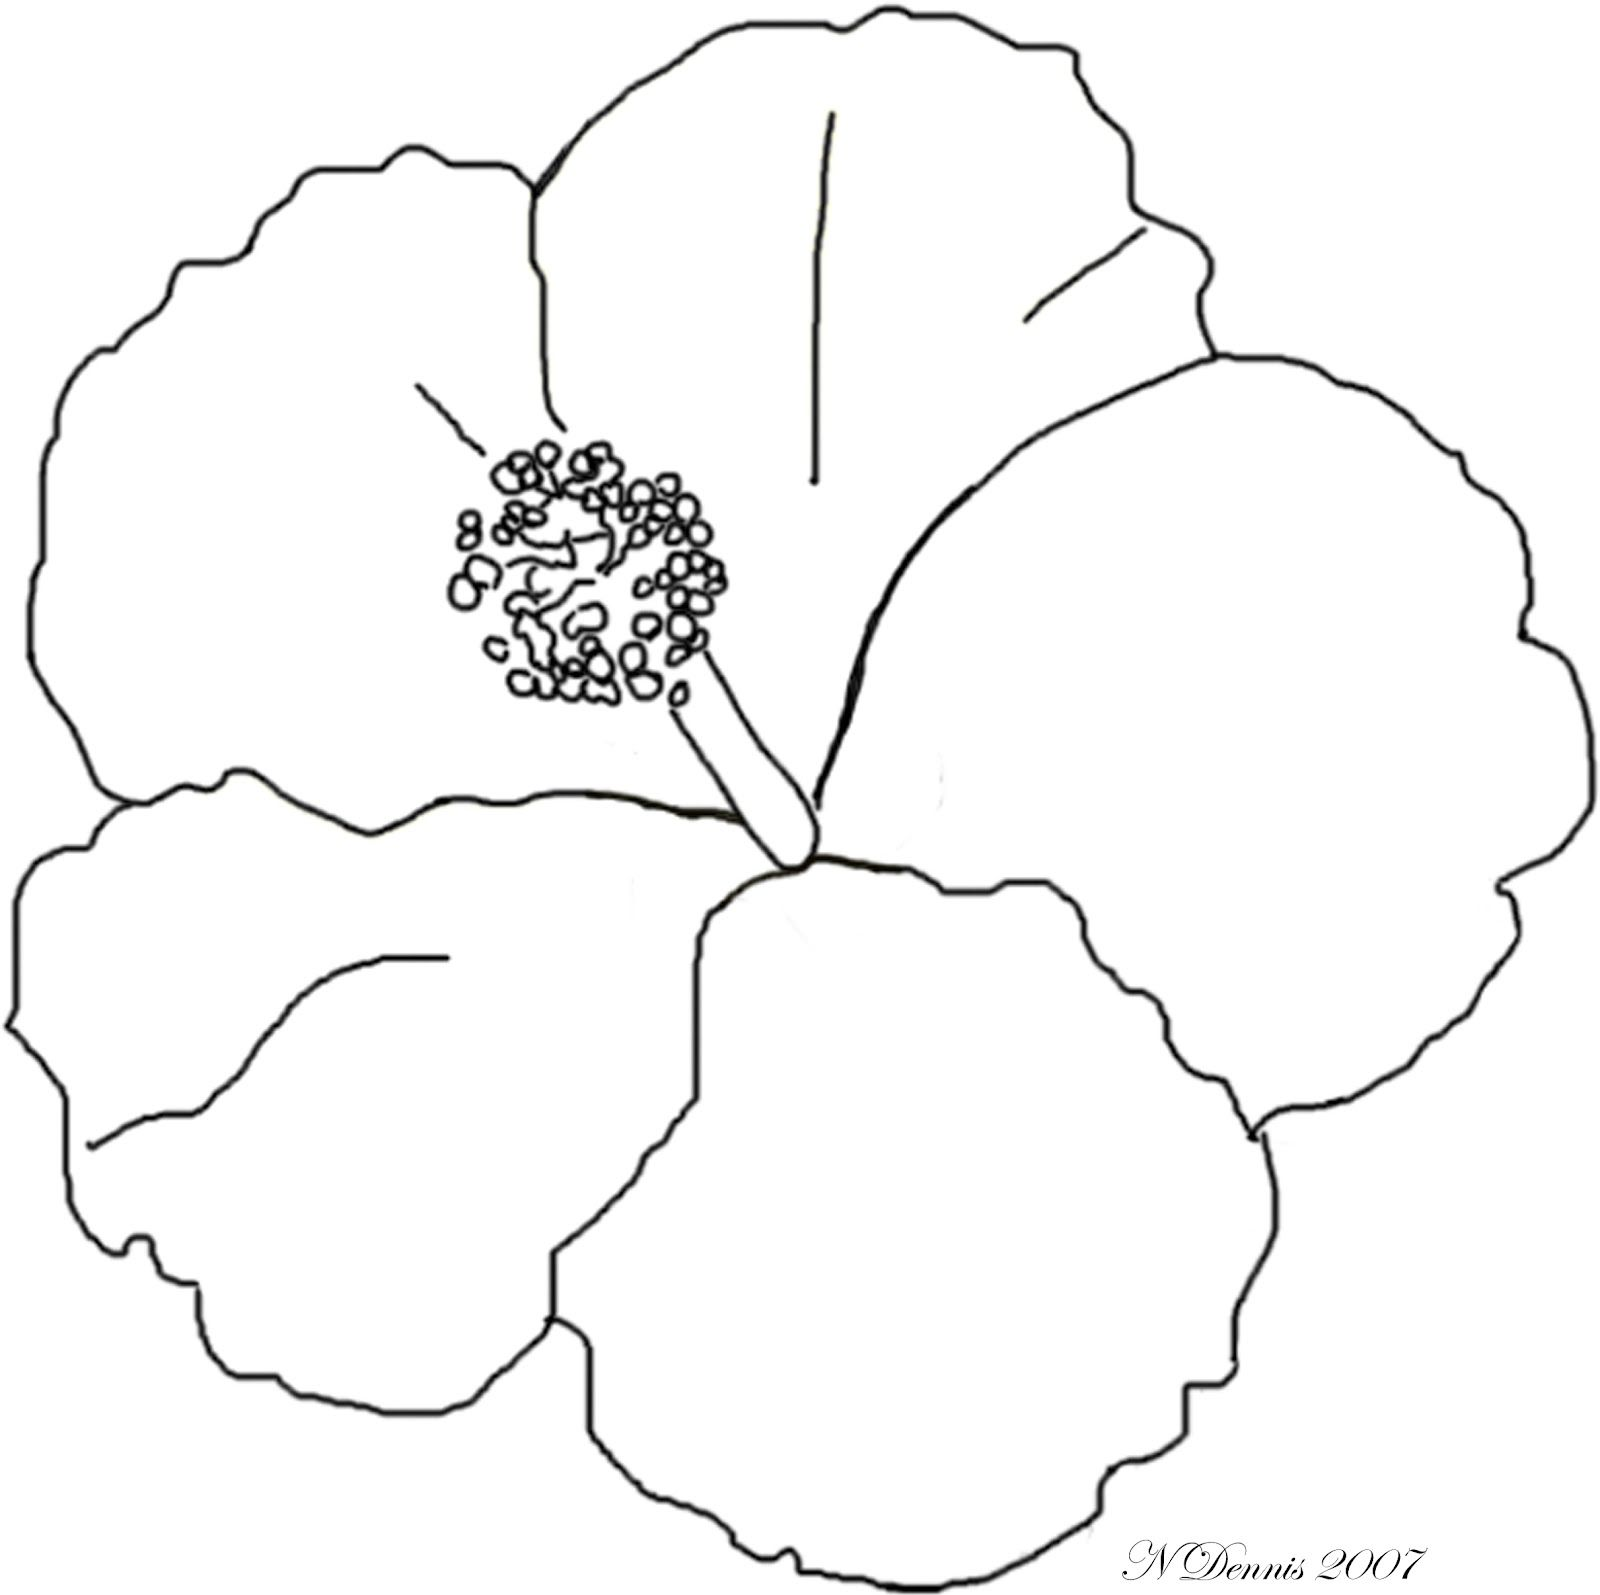 Adult Coloring Page For Hibiscus Flower - Coloring Pages For All Ages